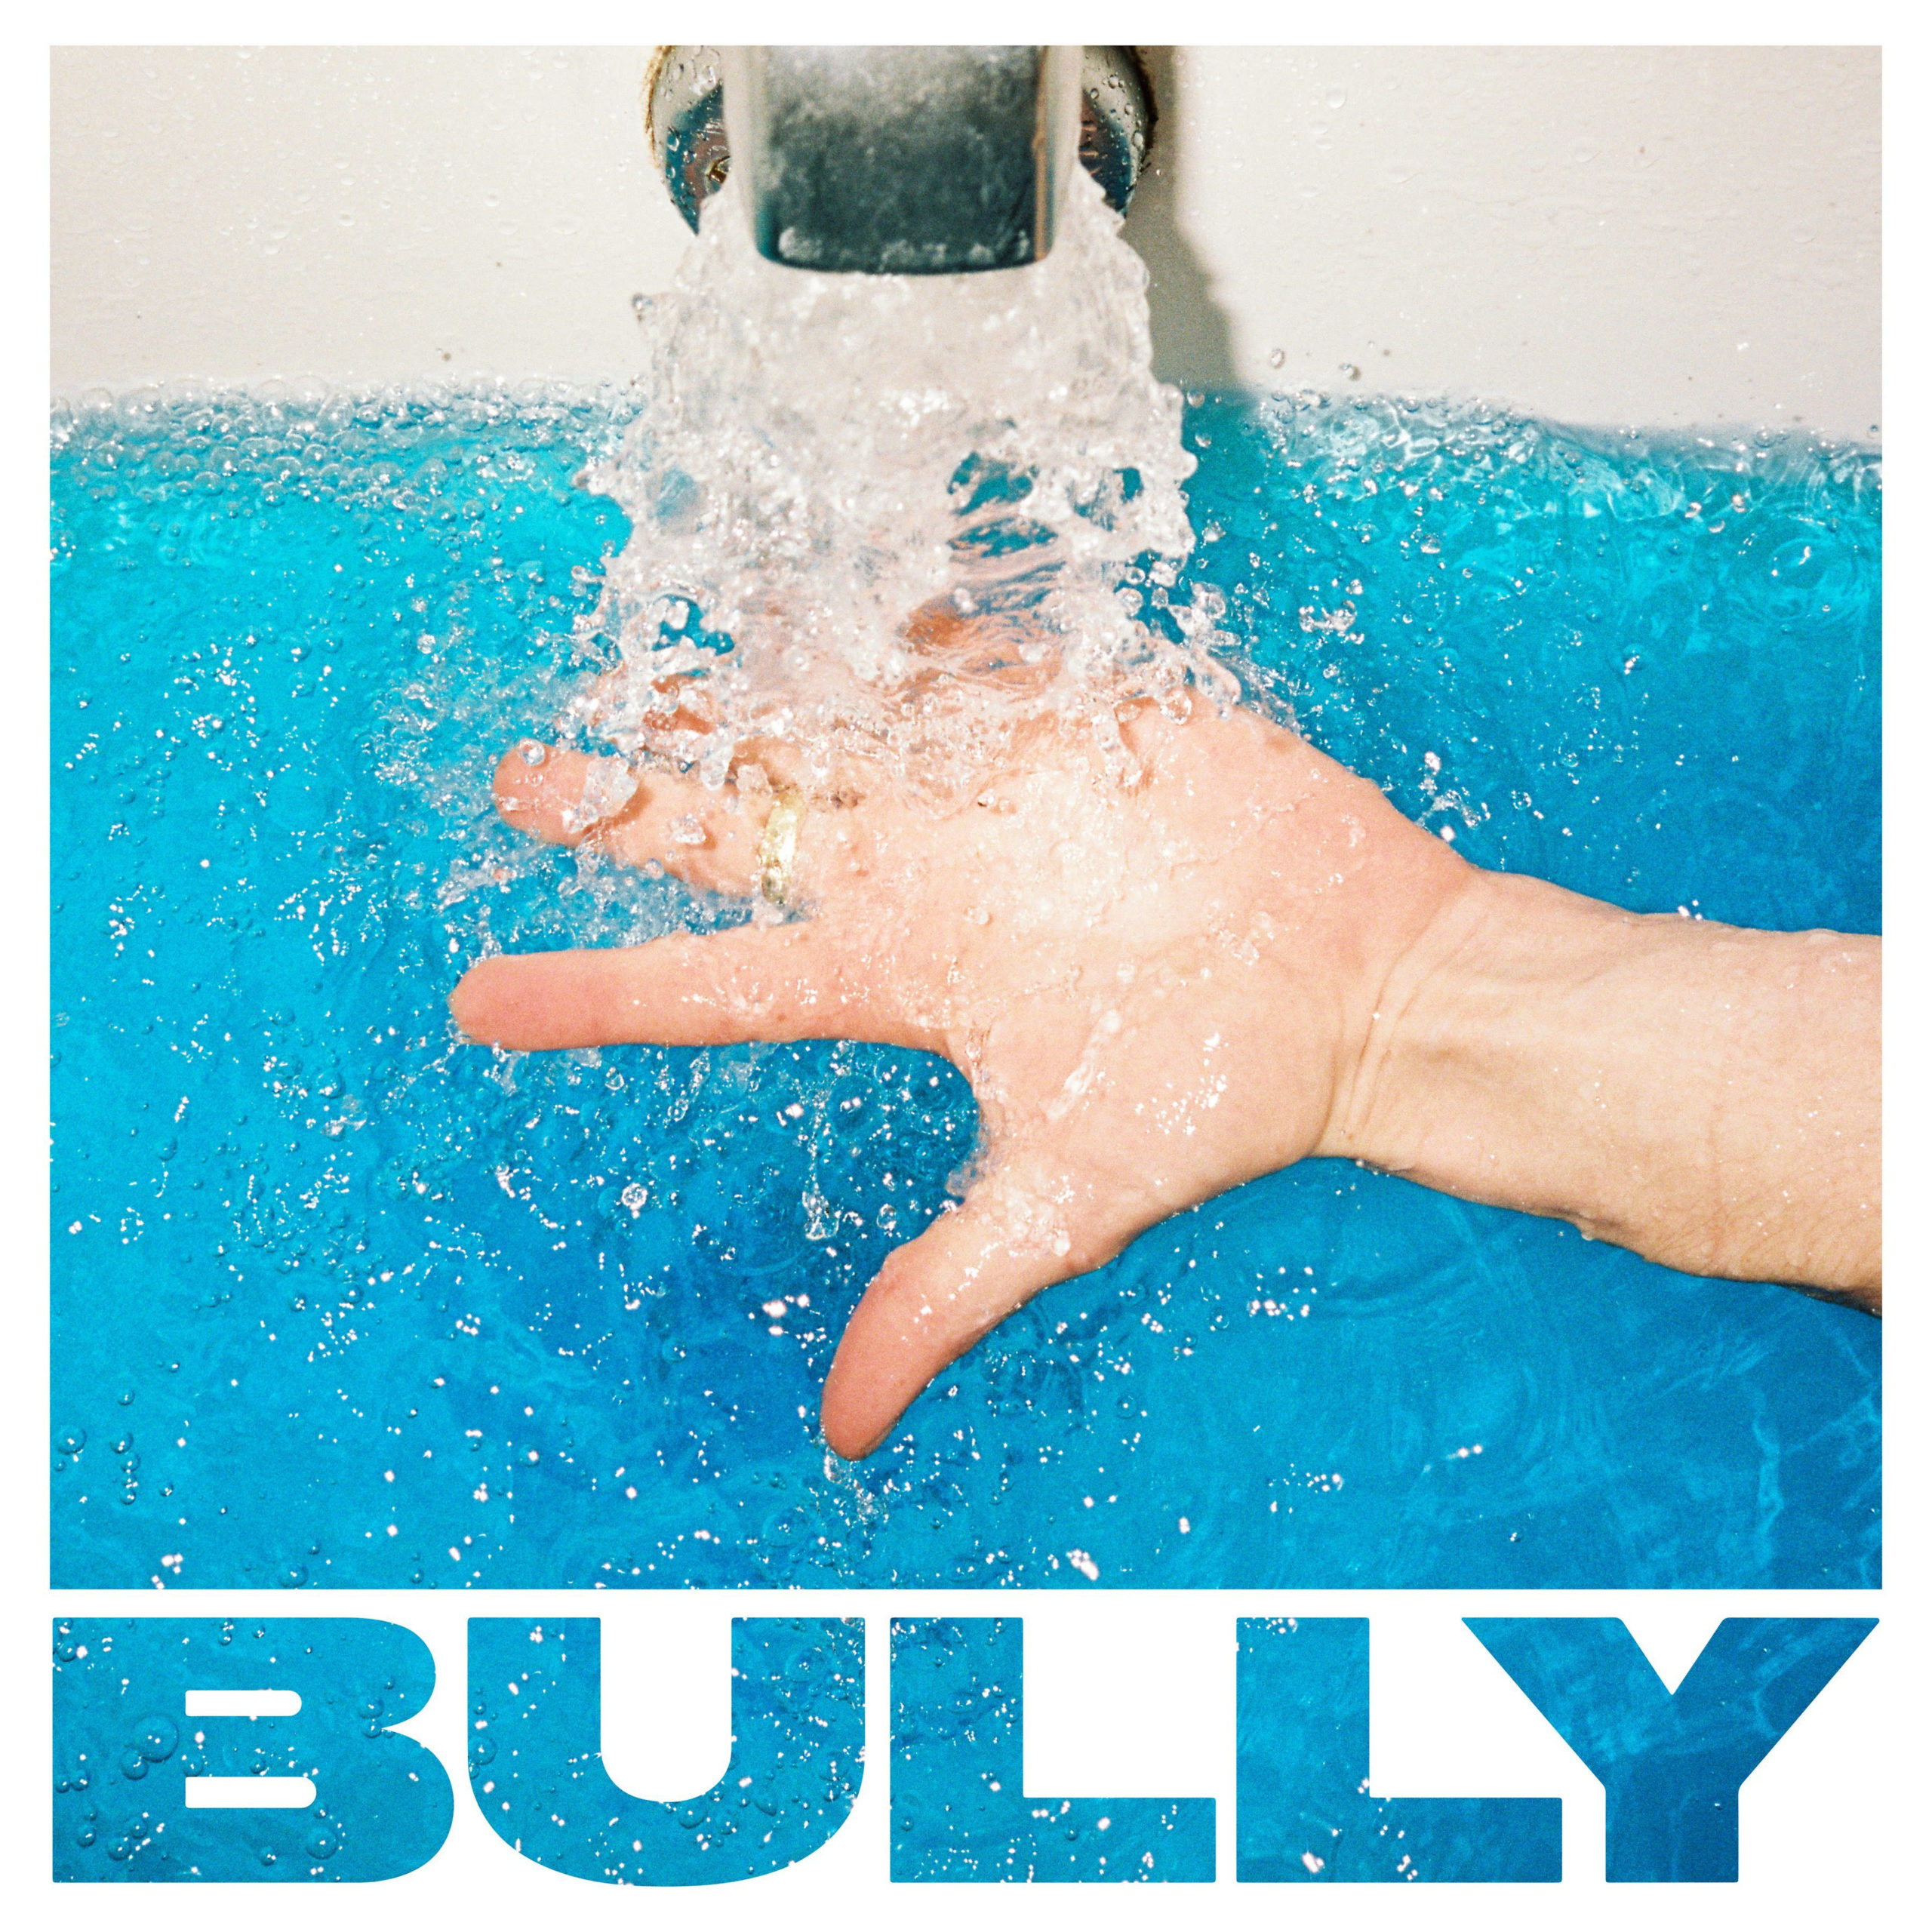 SUGAREGG by Bully album review by Gregory Adams for Northern Transmissions